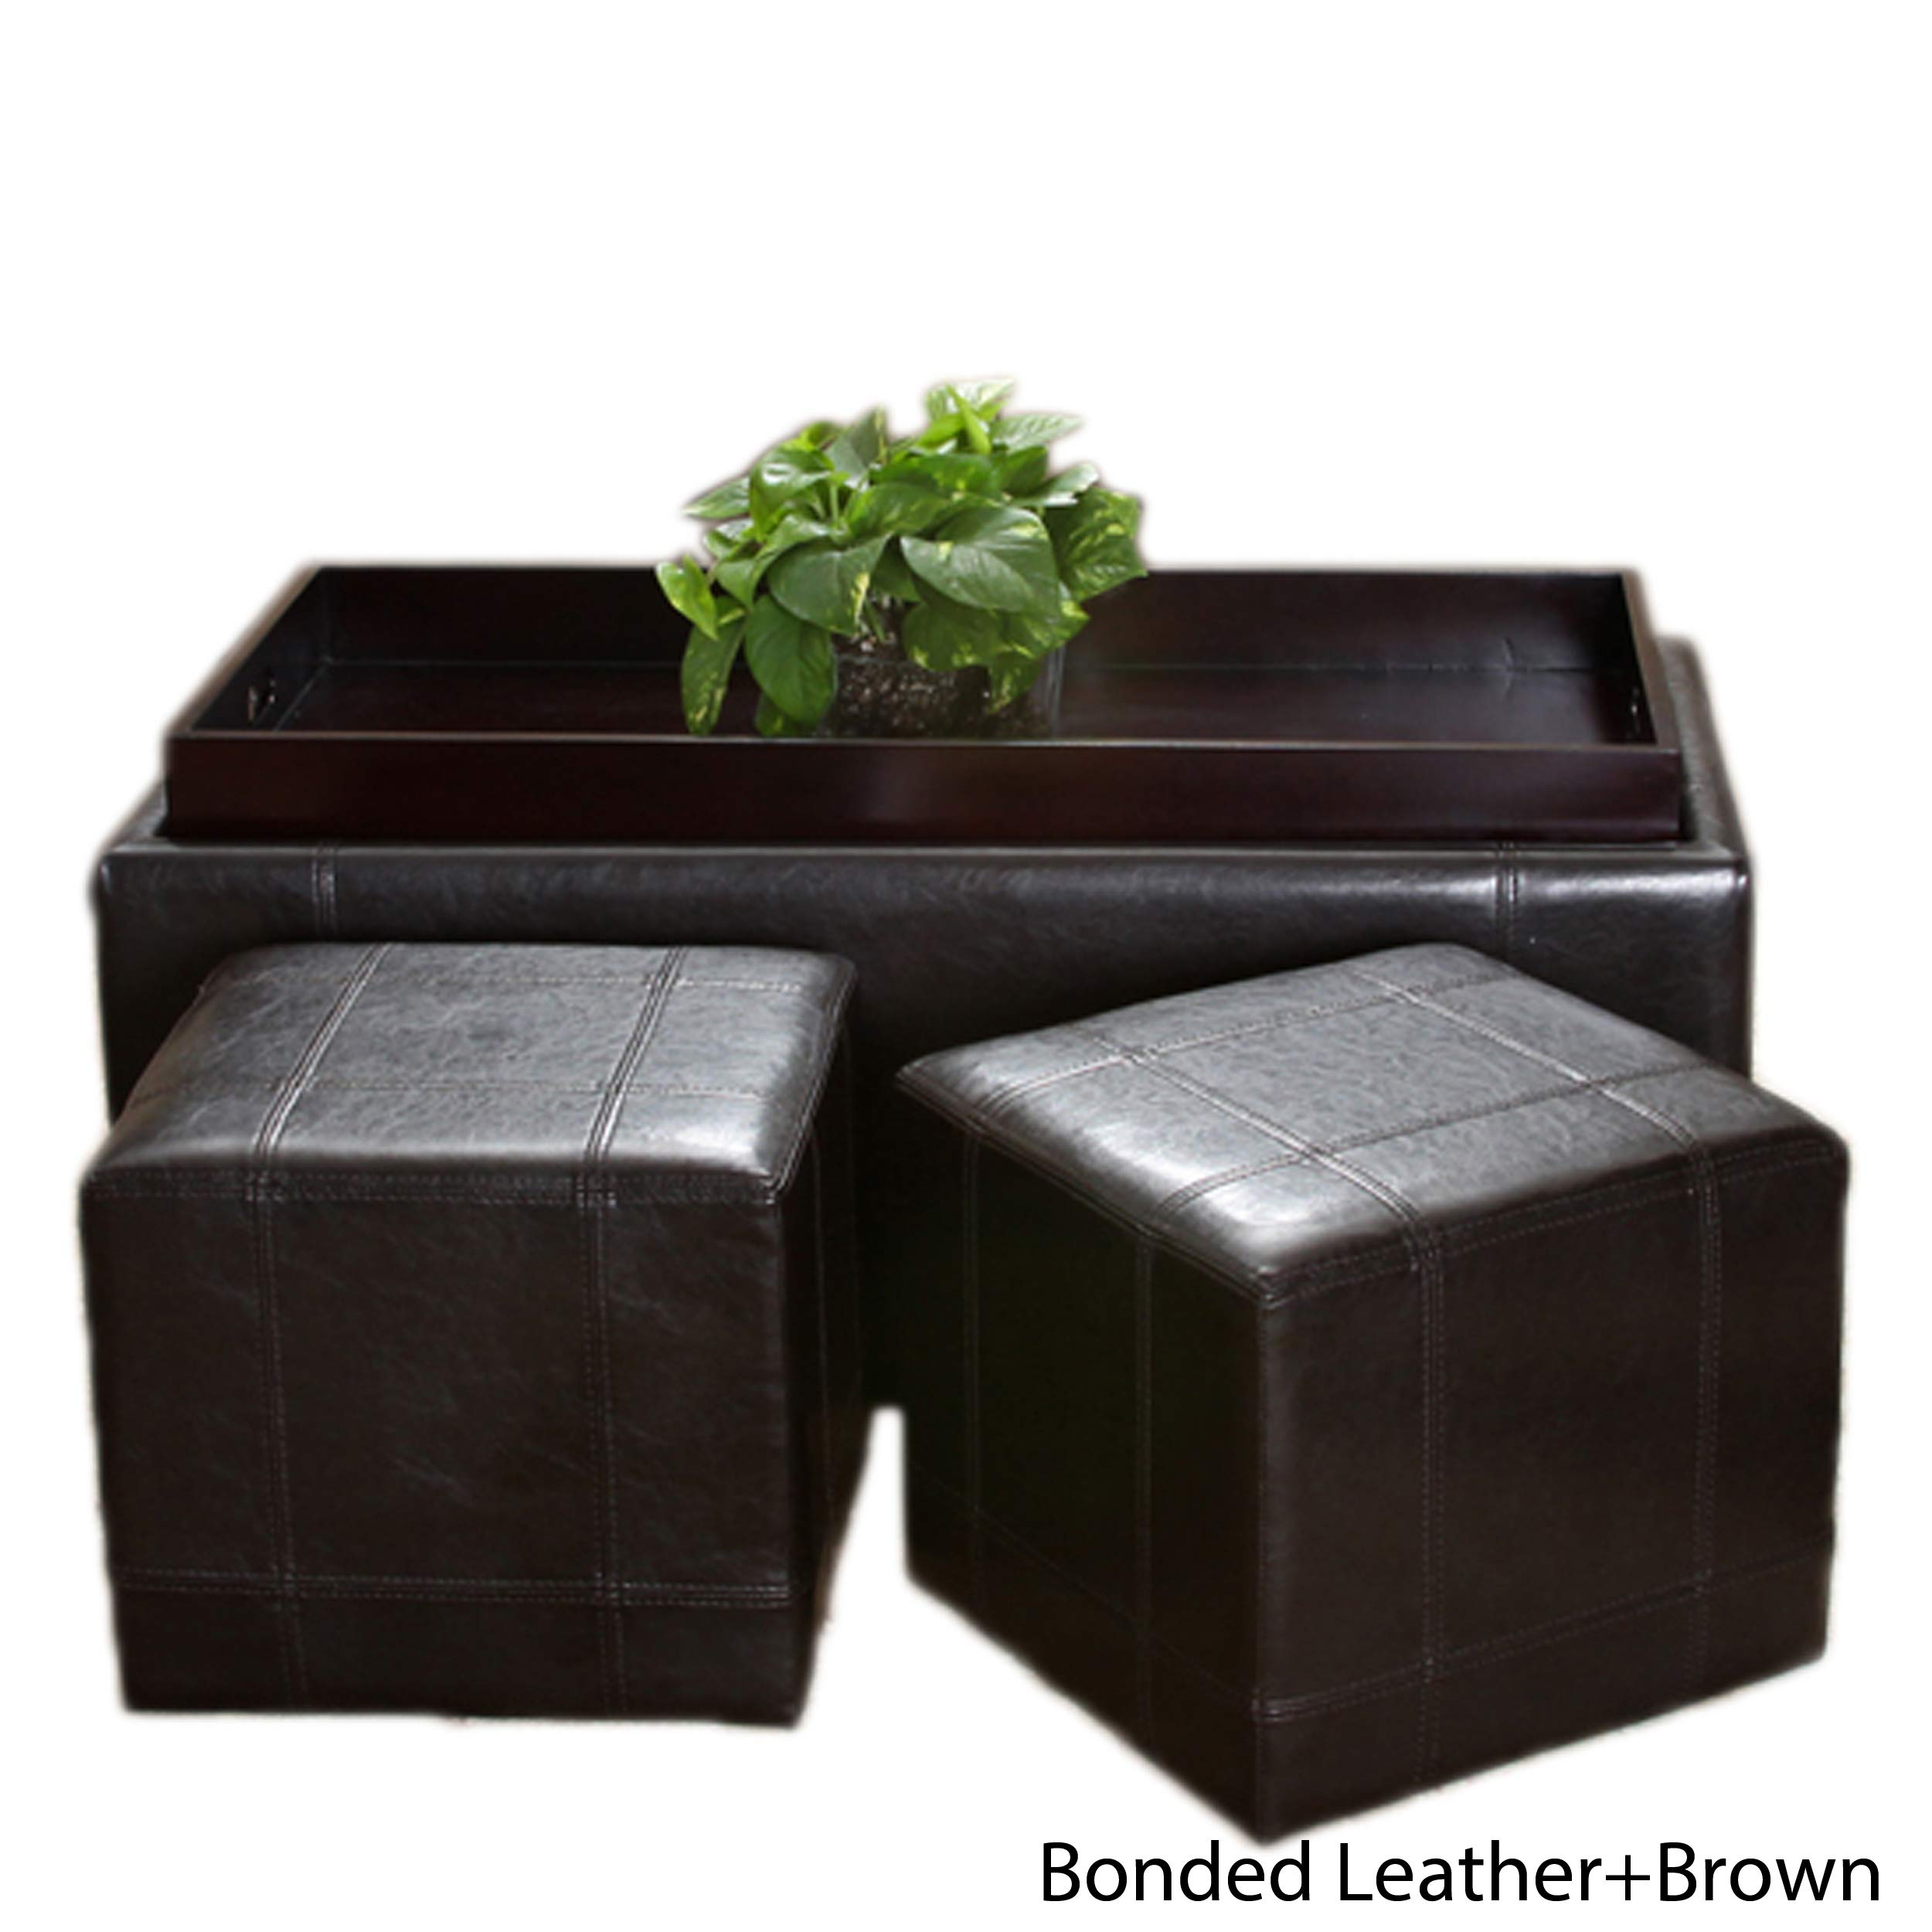 Christopher Knight Home 231388 Five Brooks 3-Piece Espresso Leather Storage Ottoman & Poufs Set, Brown by Christopher Knight Home